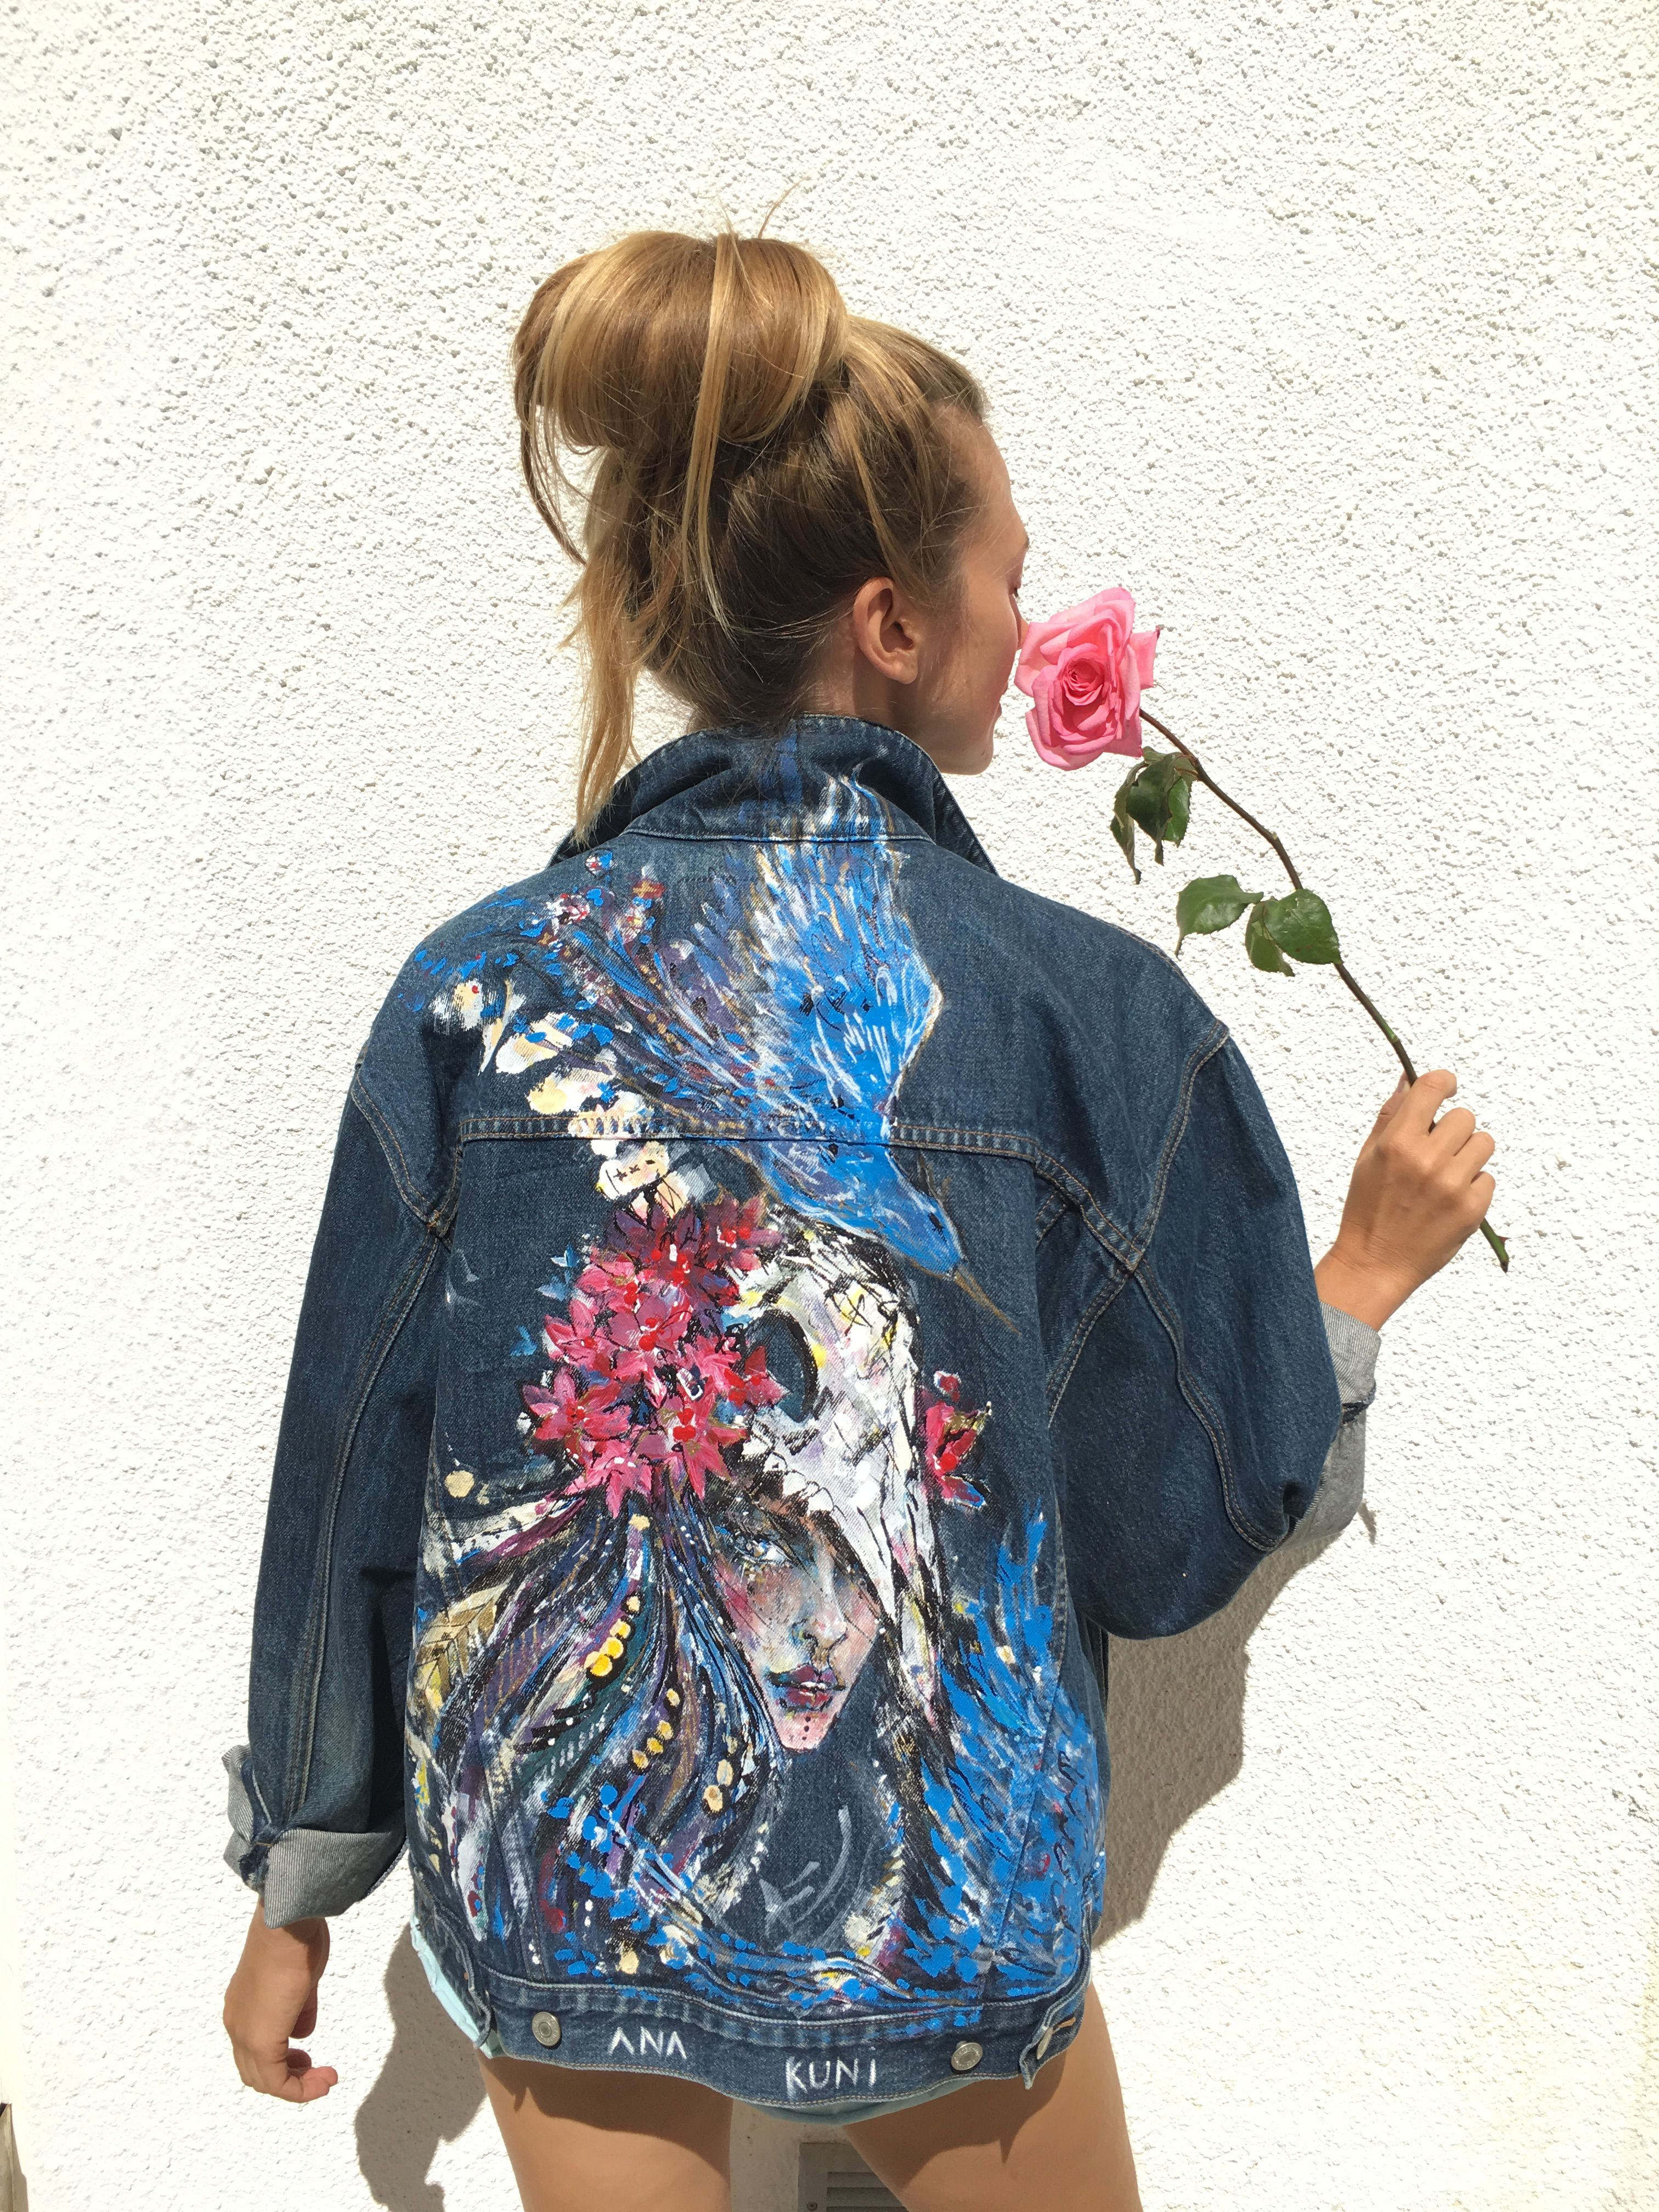 One Of A Kind Hand Painted Denim Jacket By Ana Kuni Www Anakuni Com Hand Painted Denim Jacket Painted Denim Jacket Denim Design